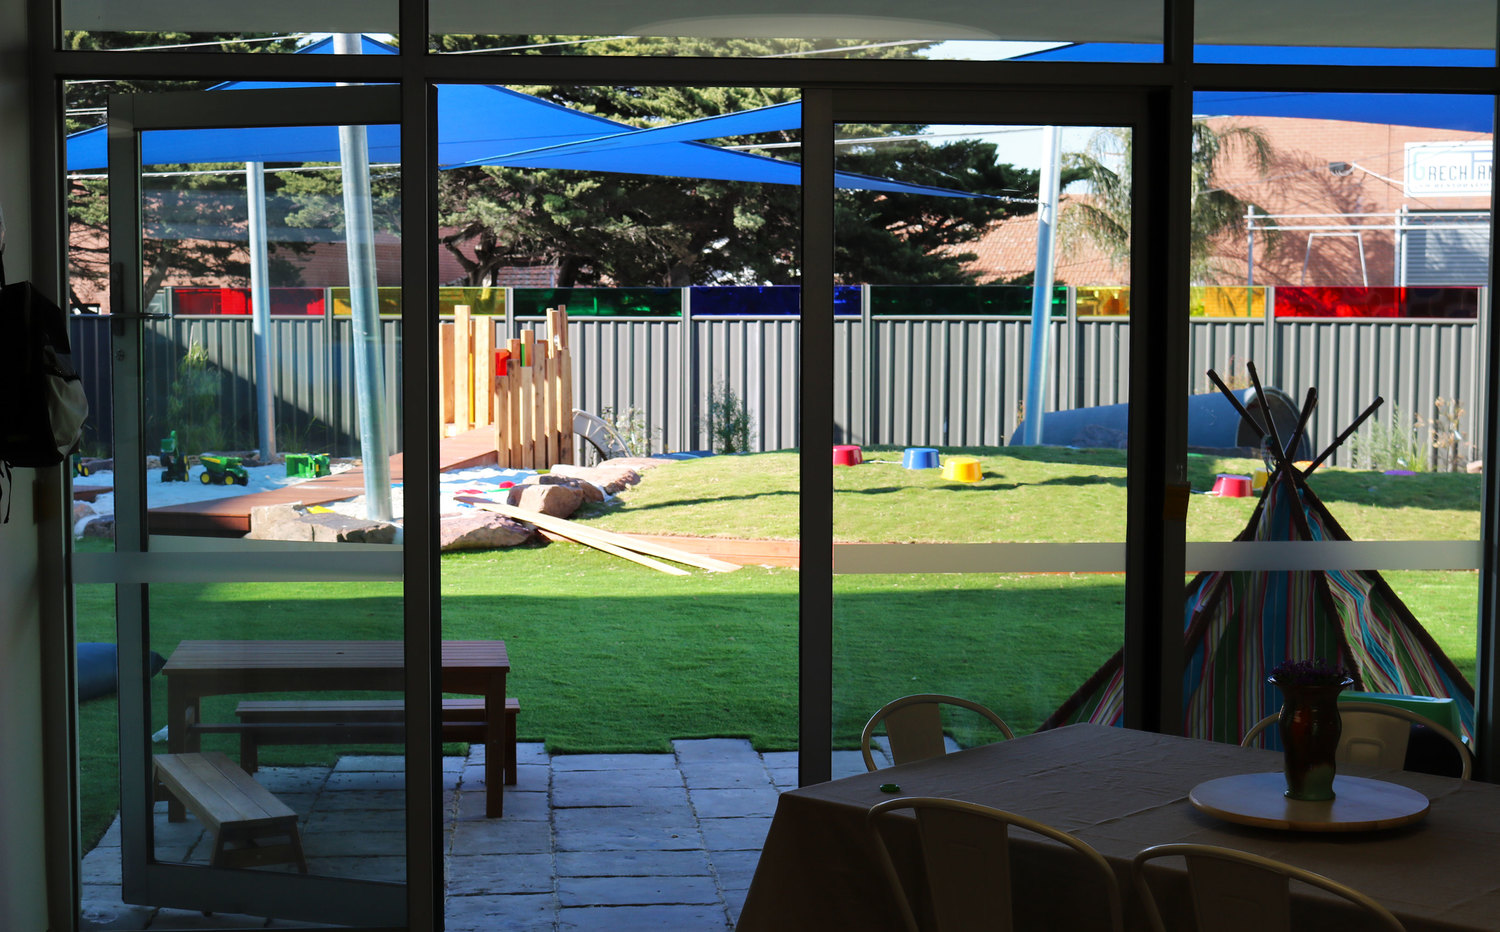 GLENROY EARLY LEARNING CENTRE, VIC